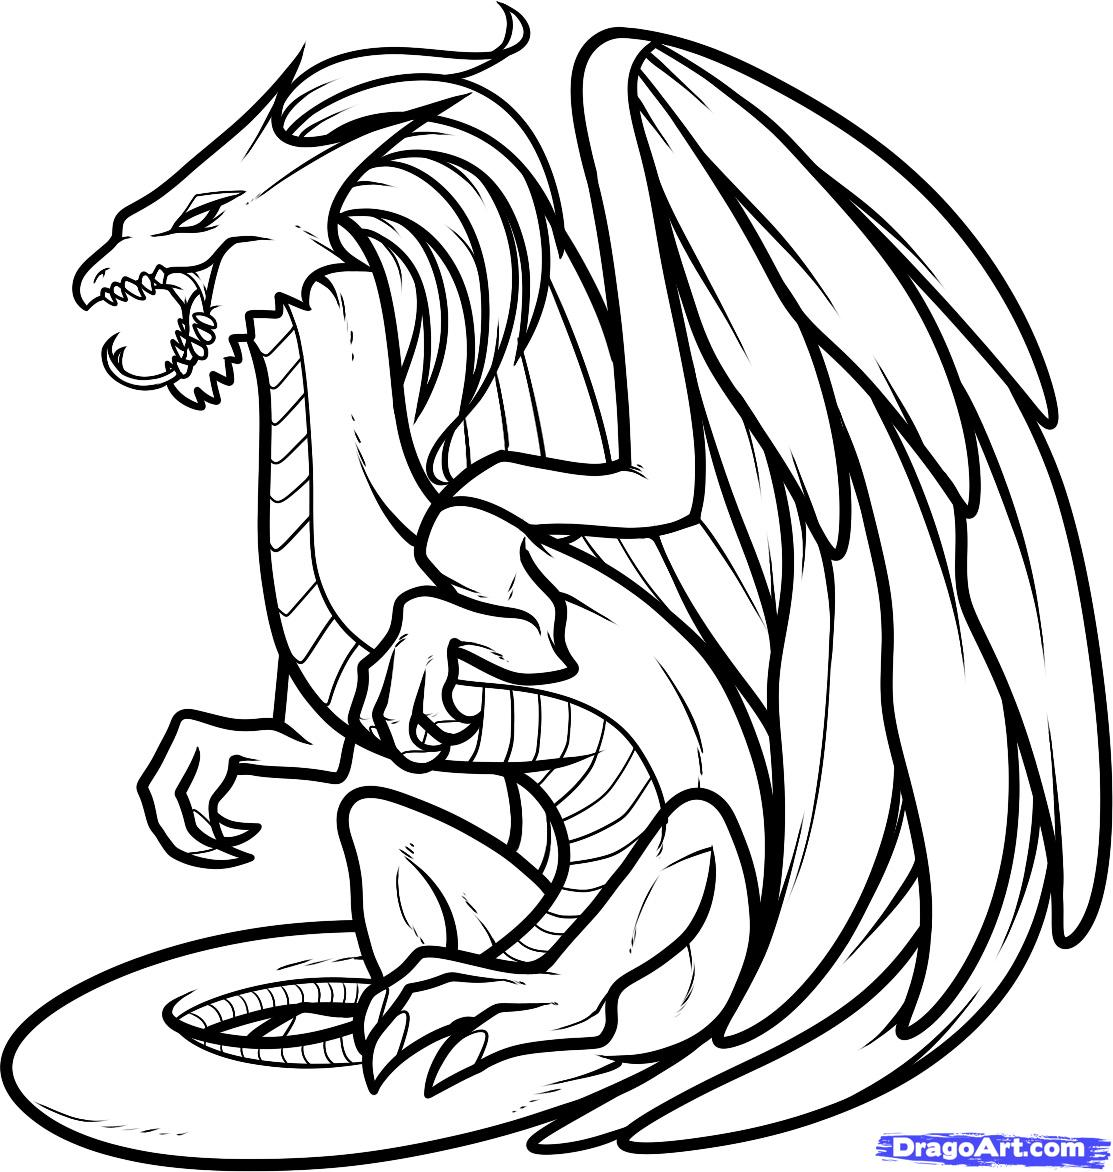 dragon coloring page dragon coloring pages to download and print for free coloring dragon page